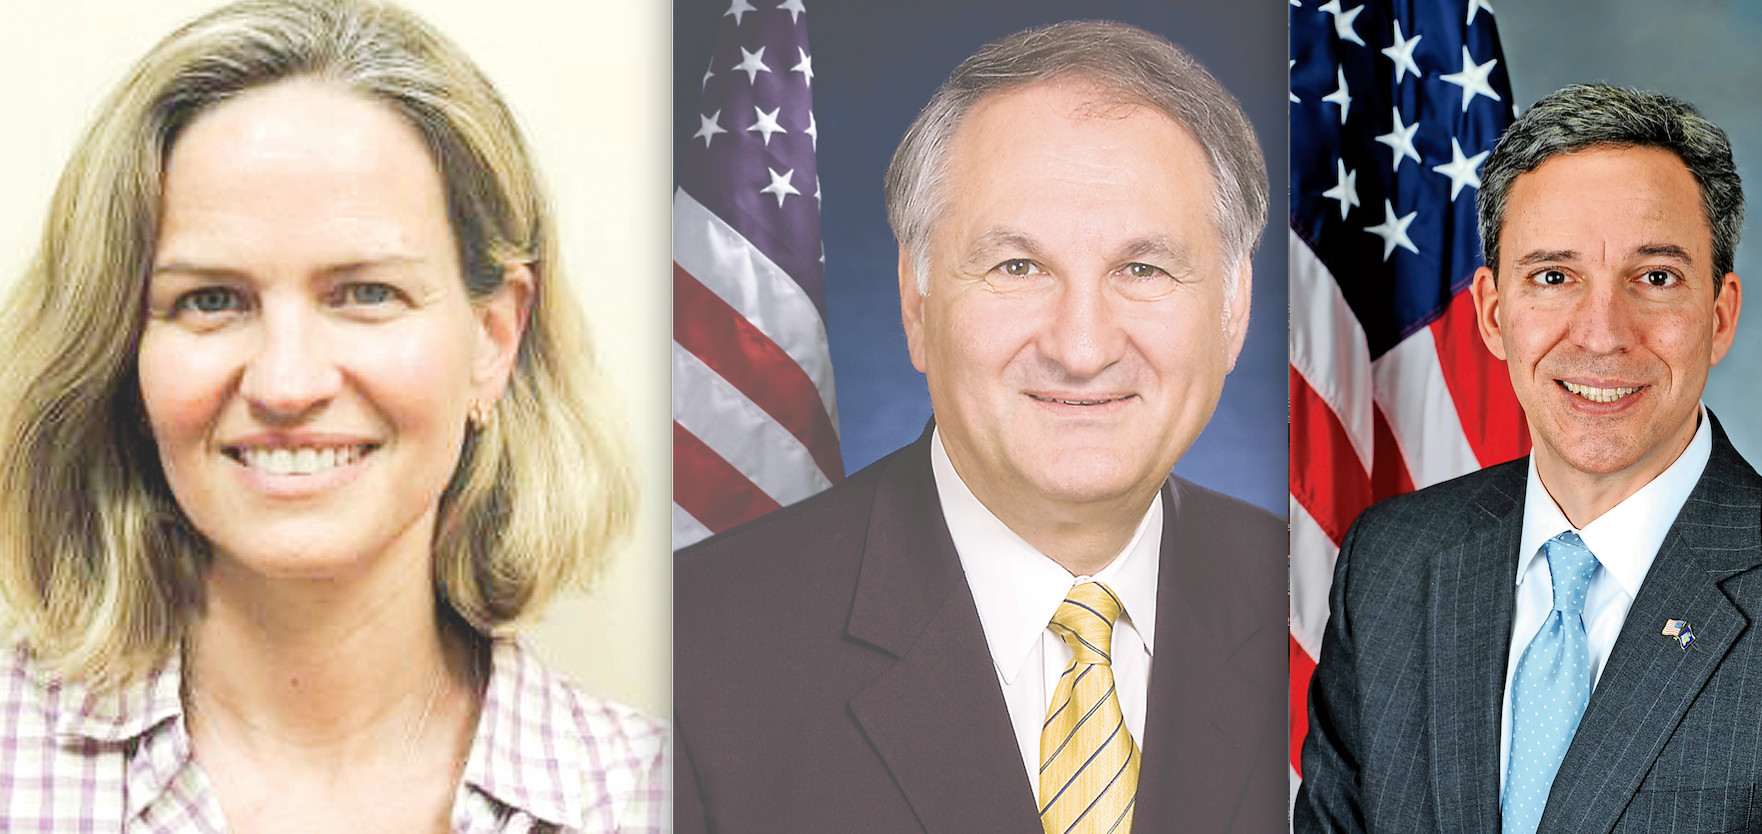 Currently there are three candidates for county executive. From left Democrats Laura Curran and George Maragos, and Republican Jack Martins.